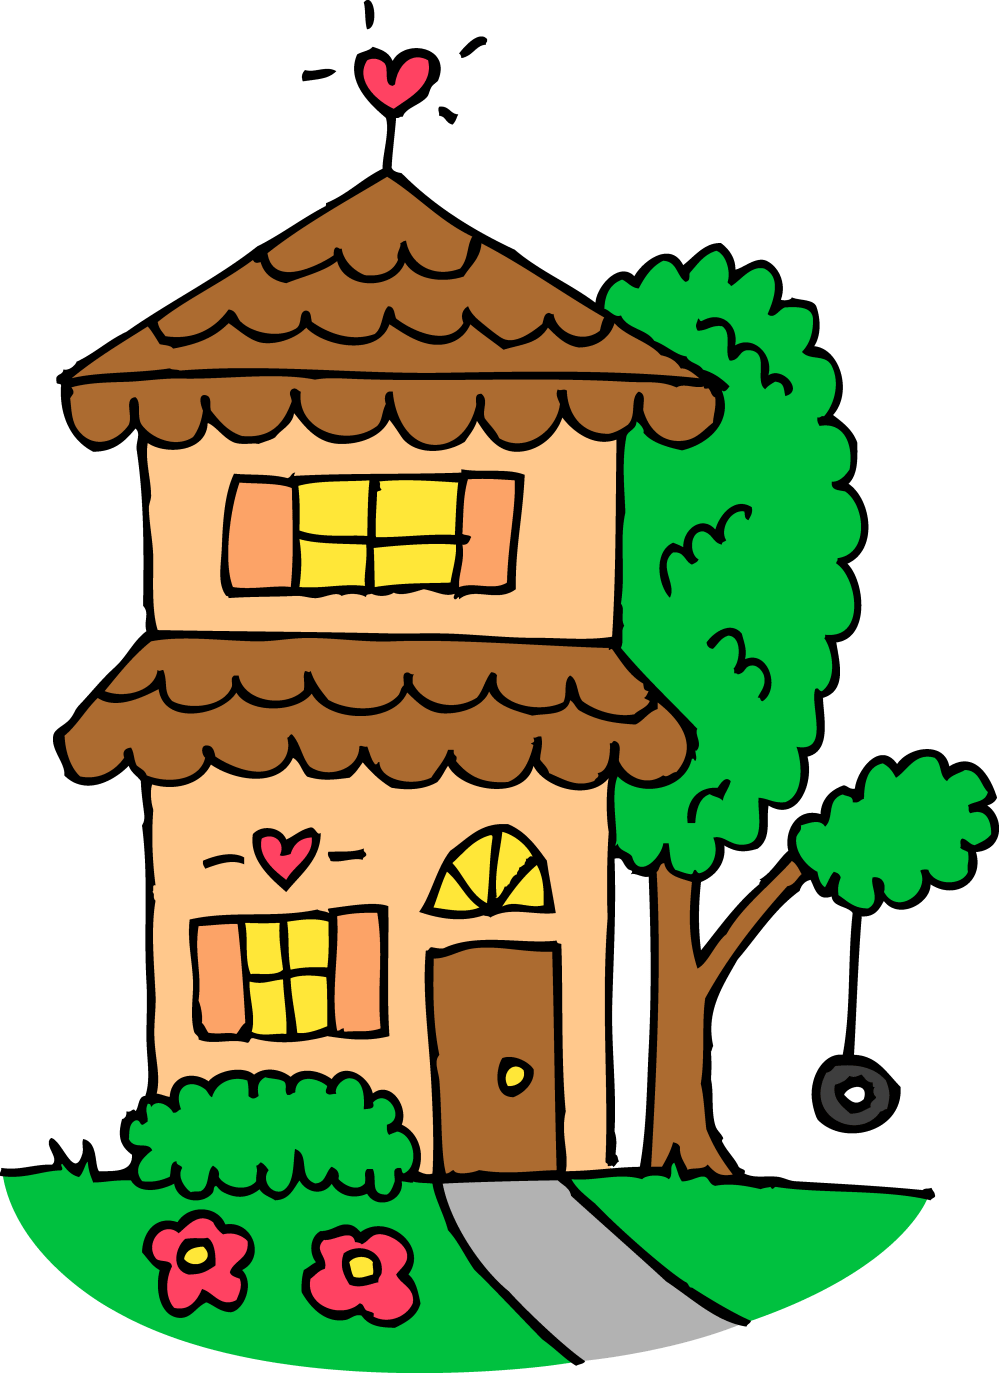 medium resolution of house construction clipart house builders philippines house